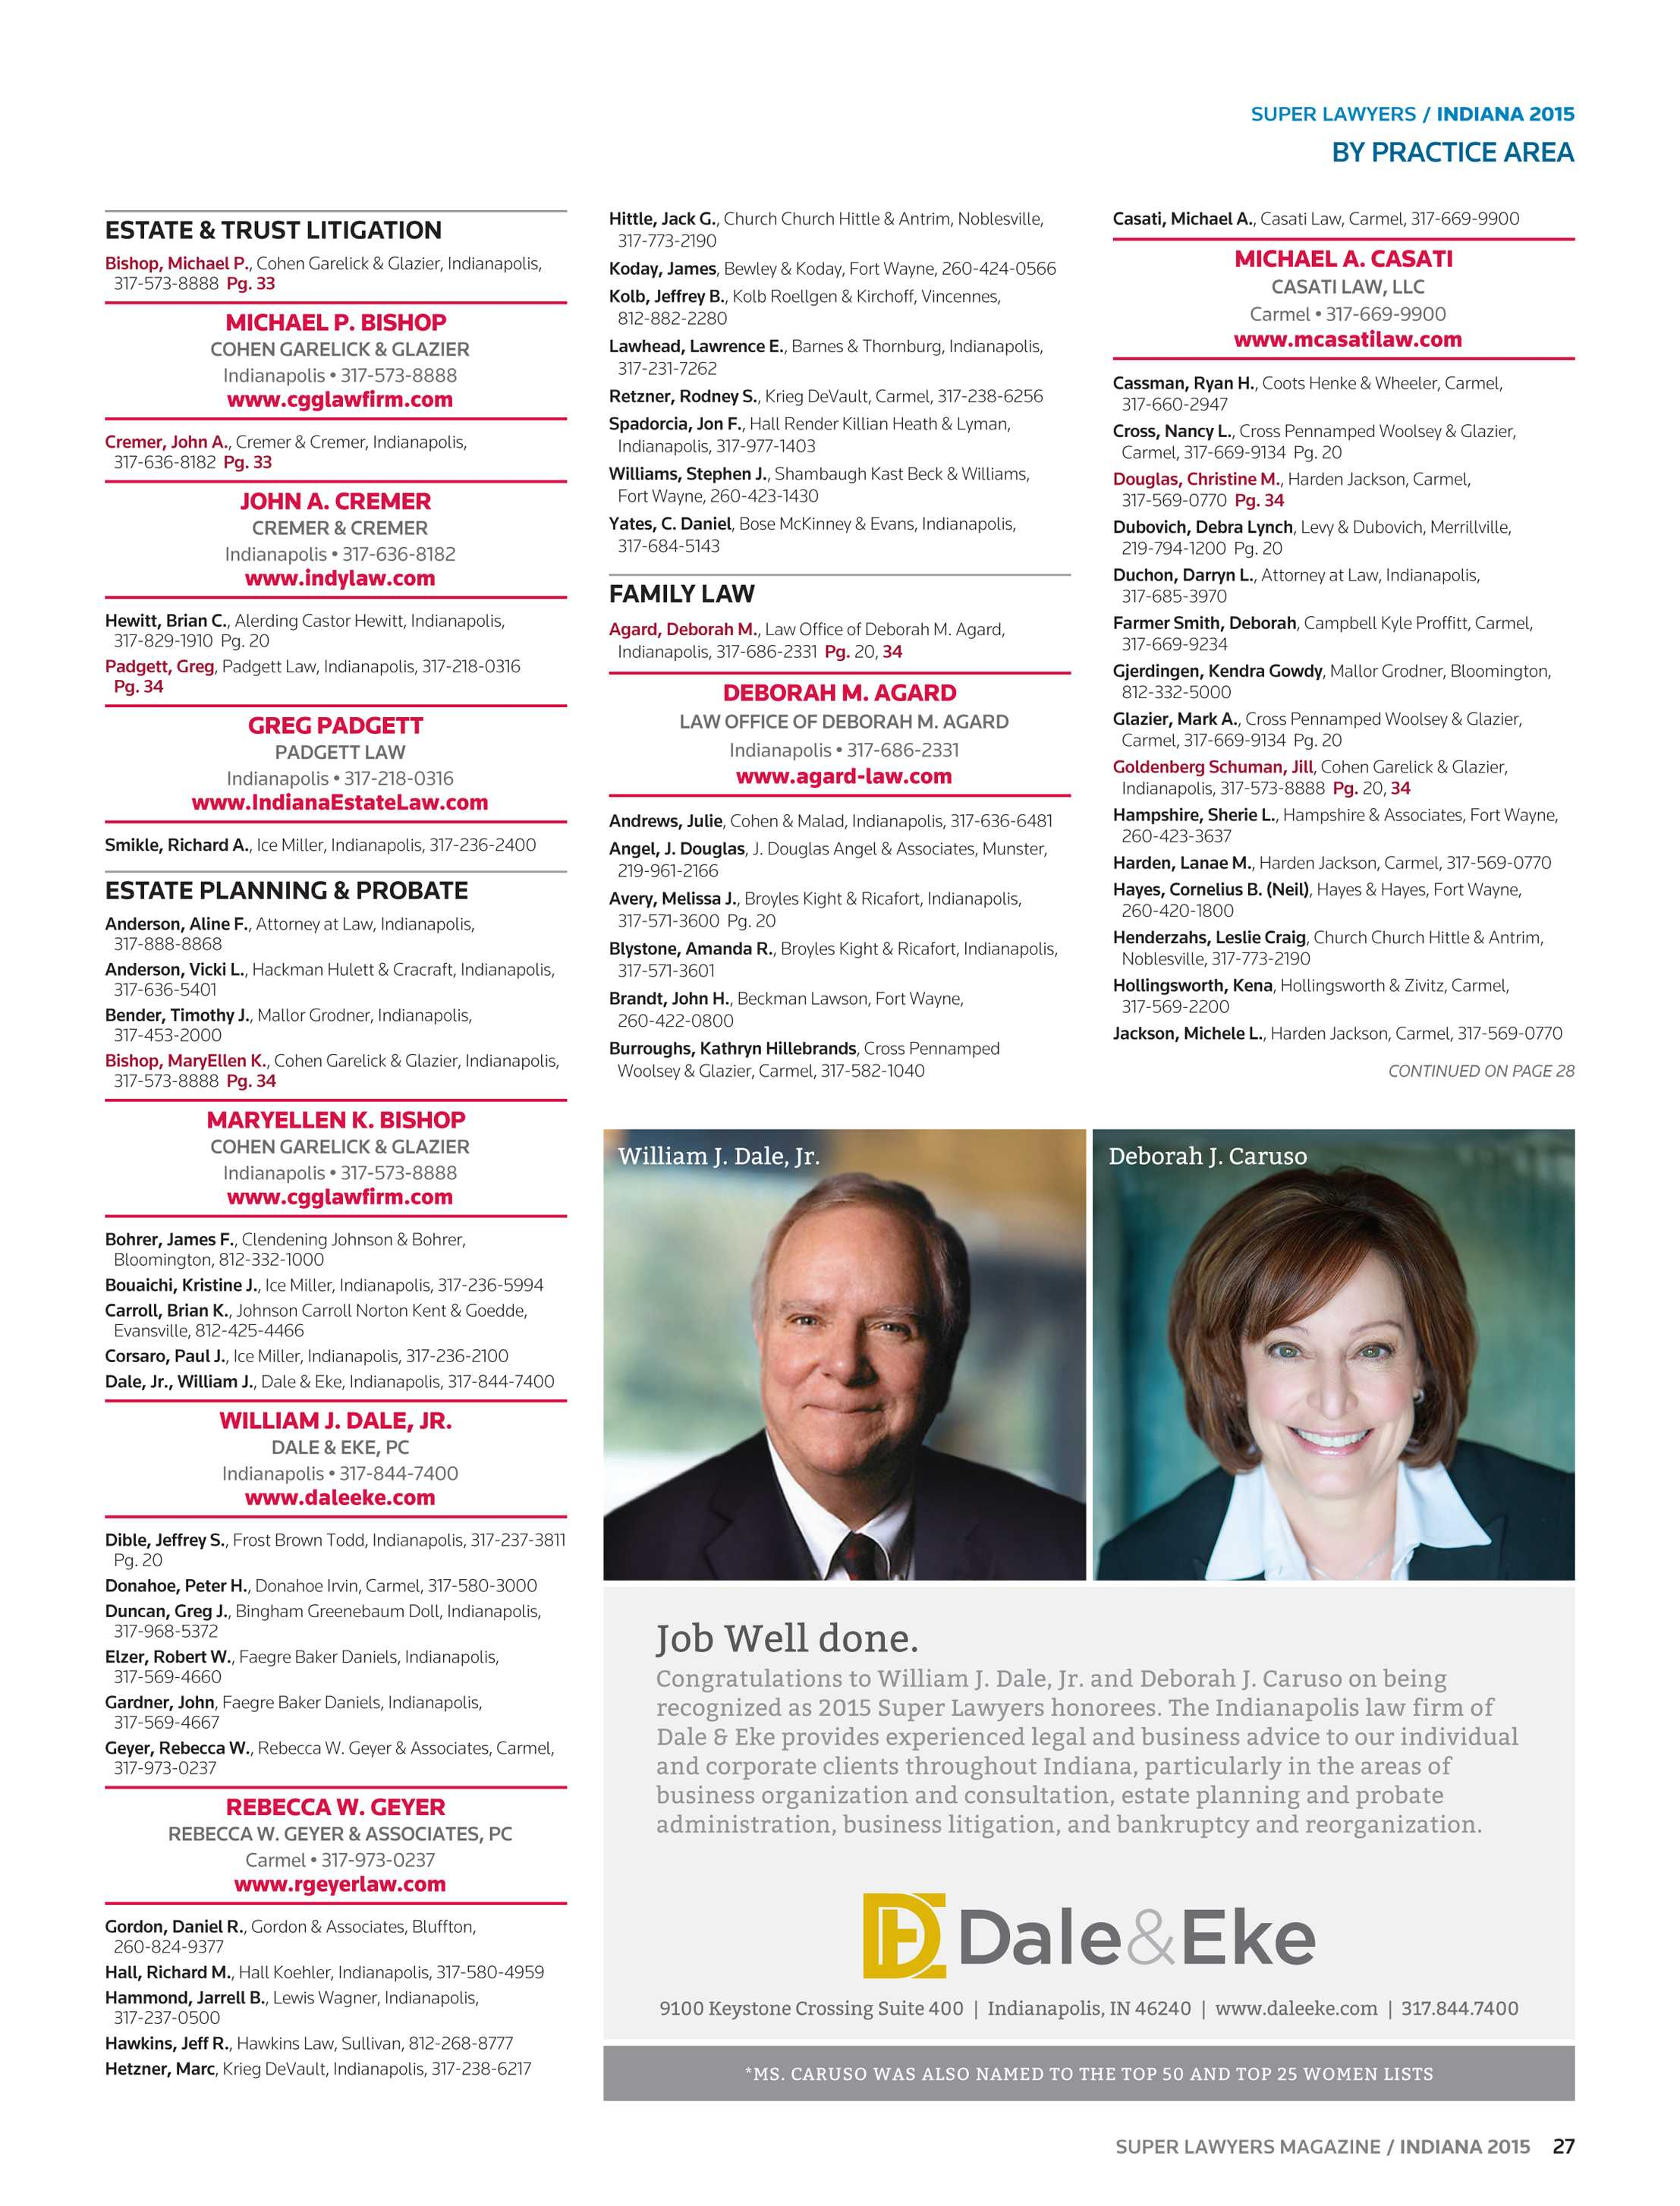 Super Lawyers - Indiana 2015 - page 27